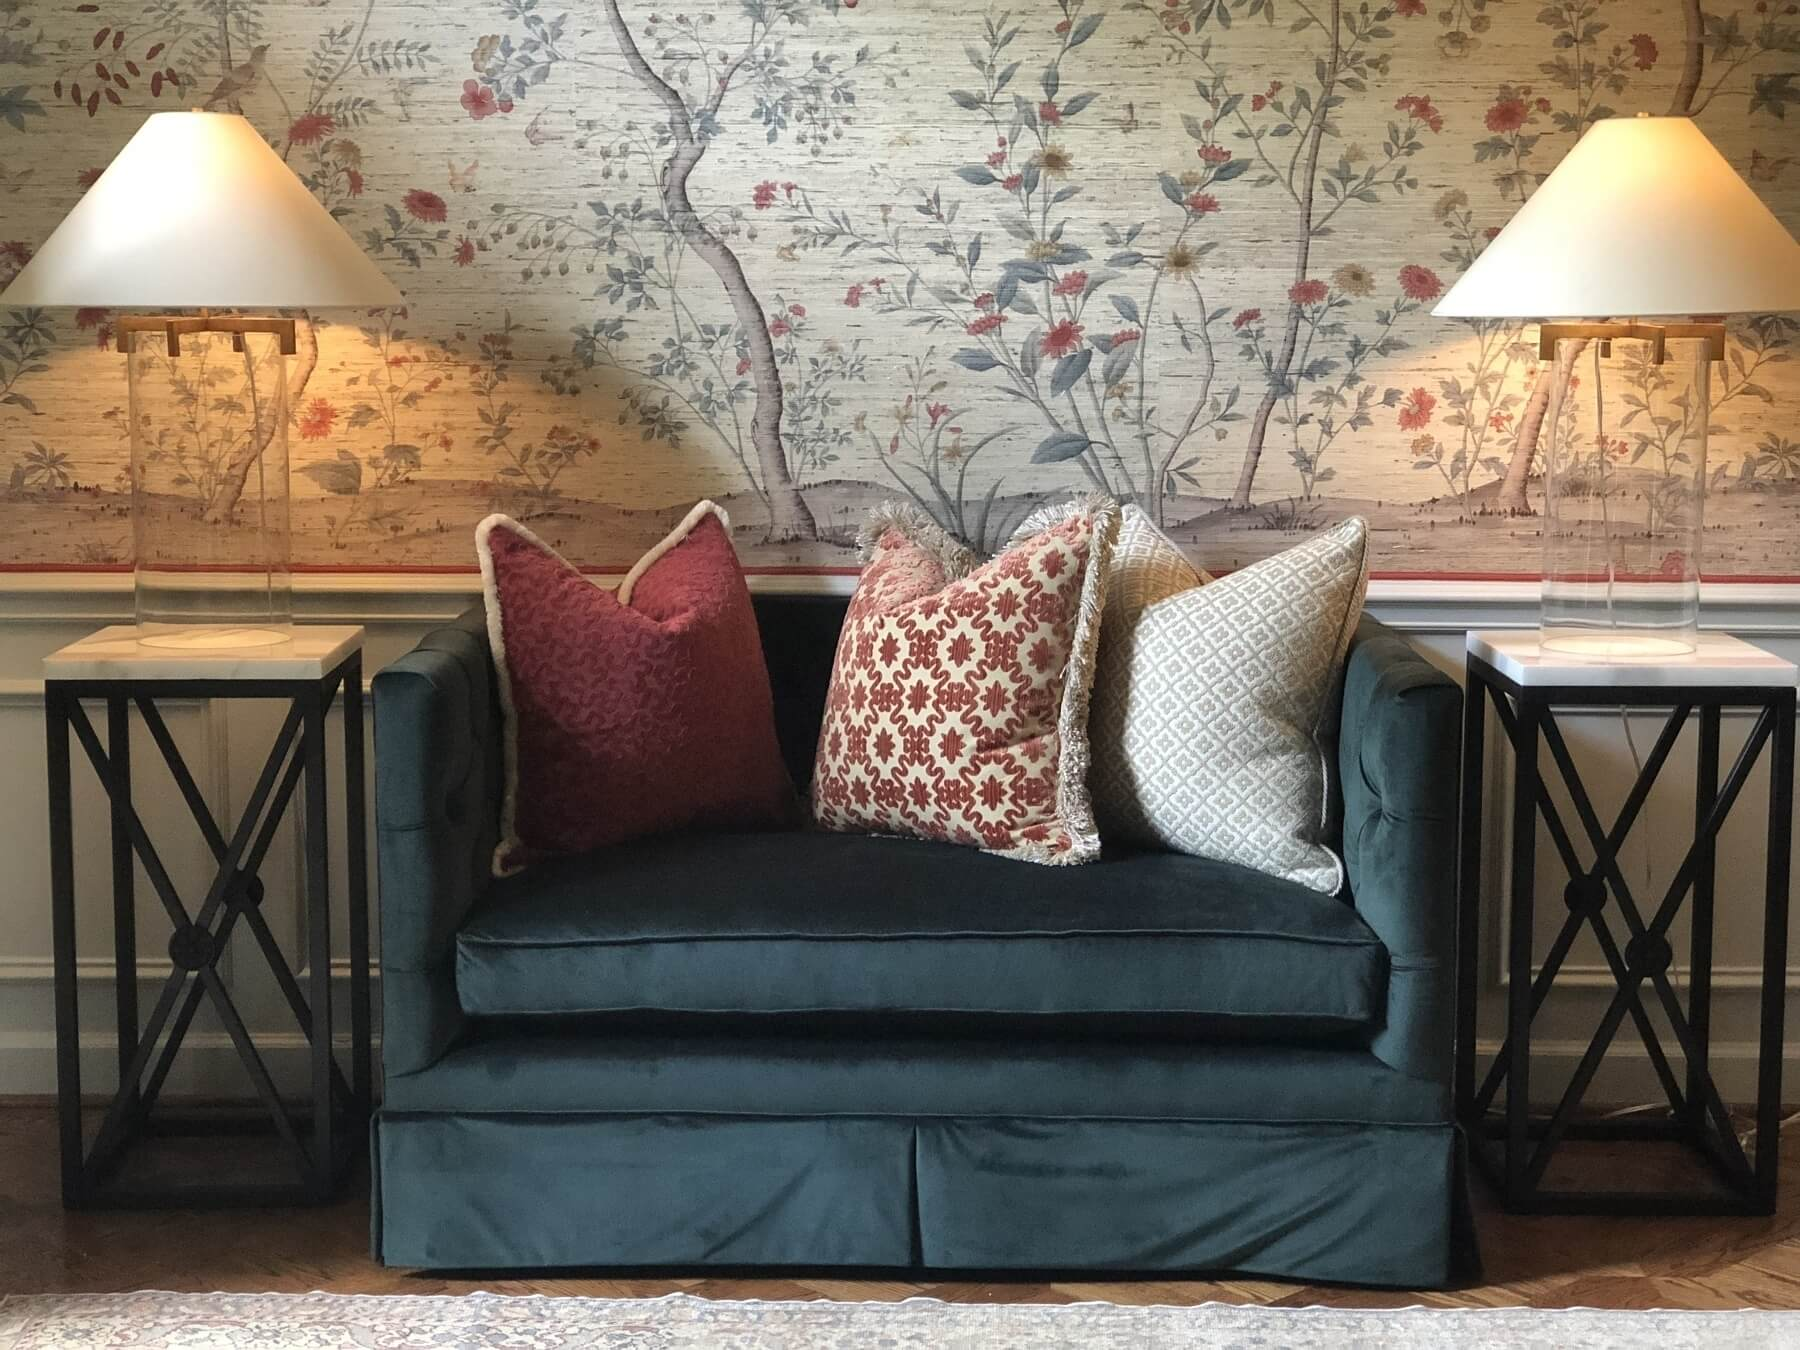 Home Trends: Wallpaper in Every Room